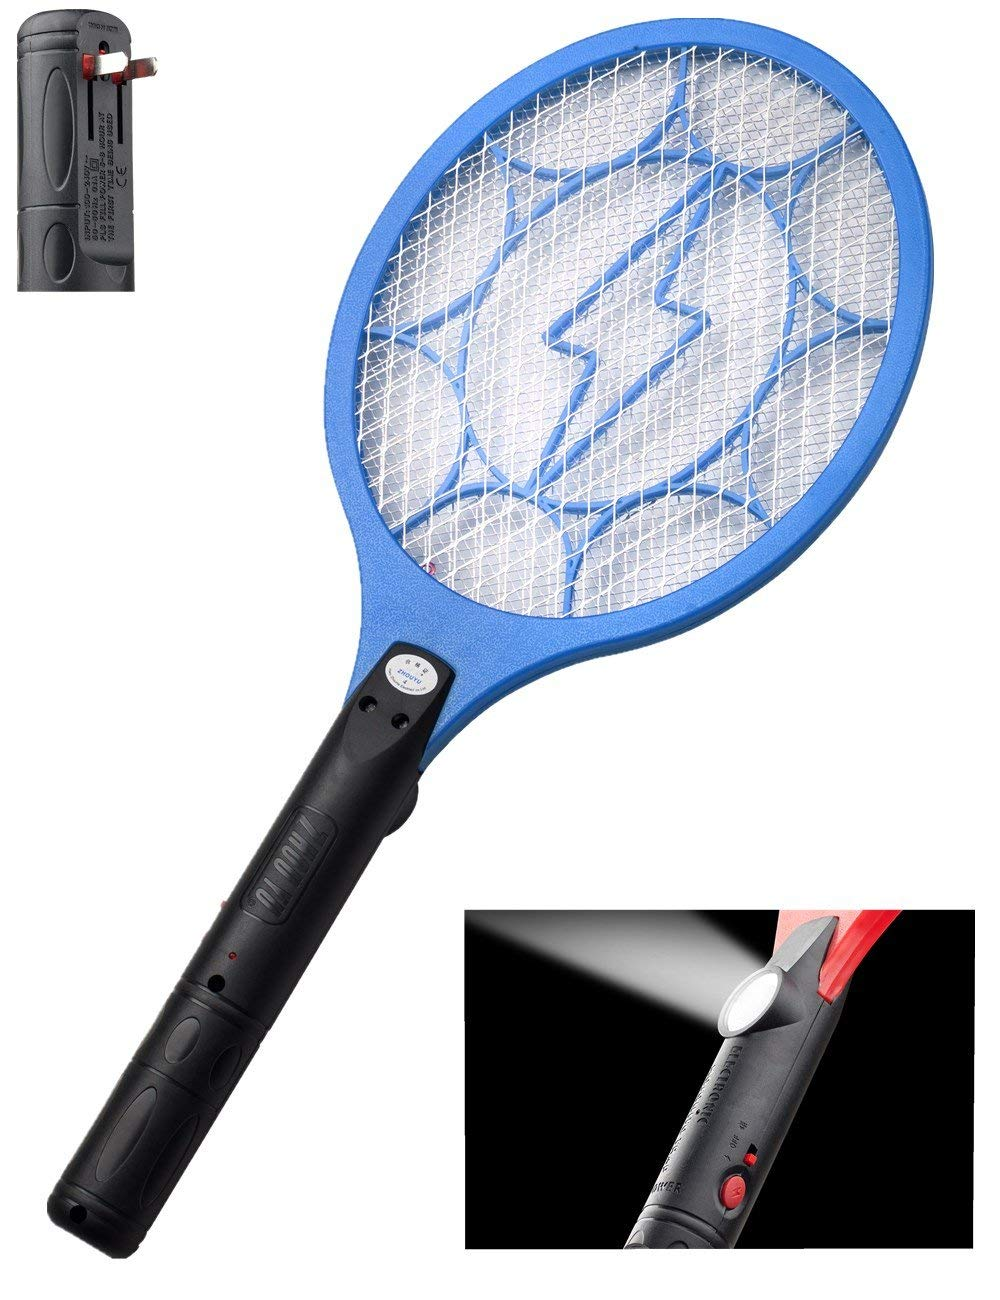 3c world electric fly swatter